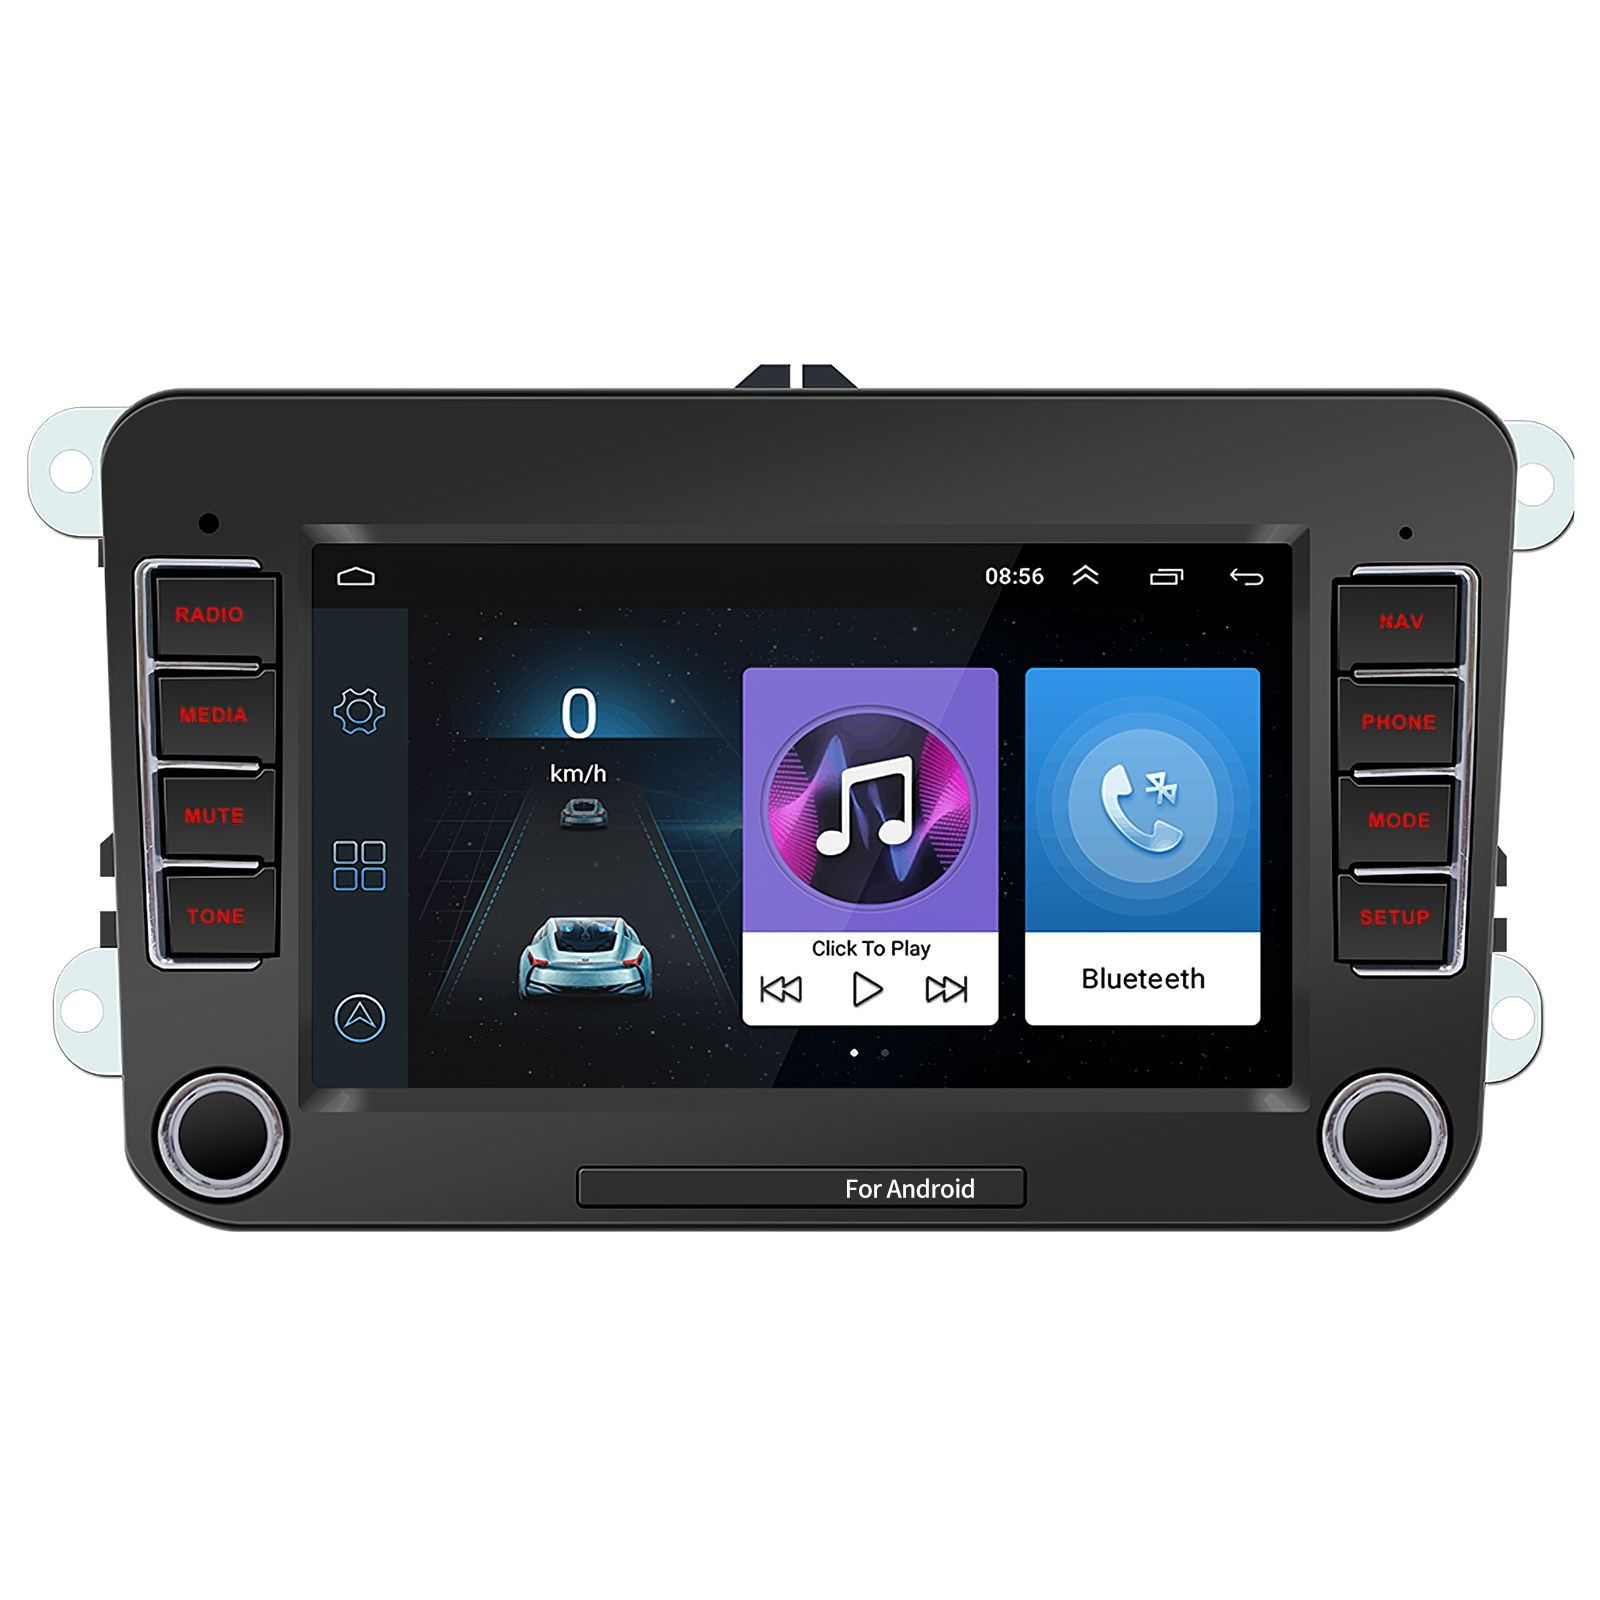 7inch-car-stereo-screen-car-audio-receiver-with-gps-navigation-function-car-radio-bluetooth-connection-with-high-quality-sound